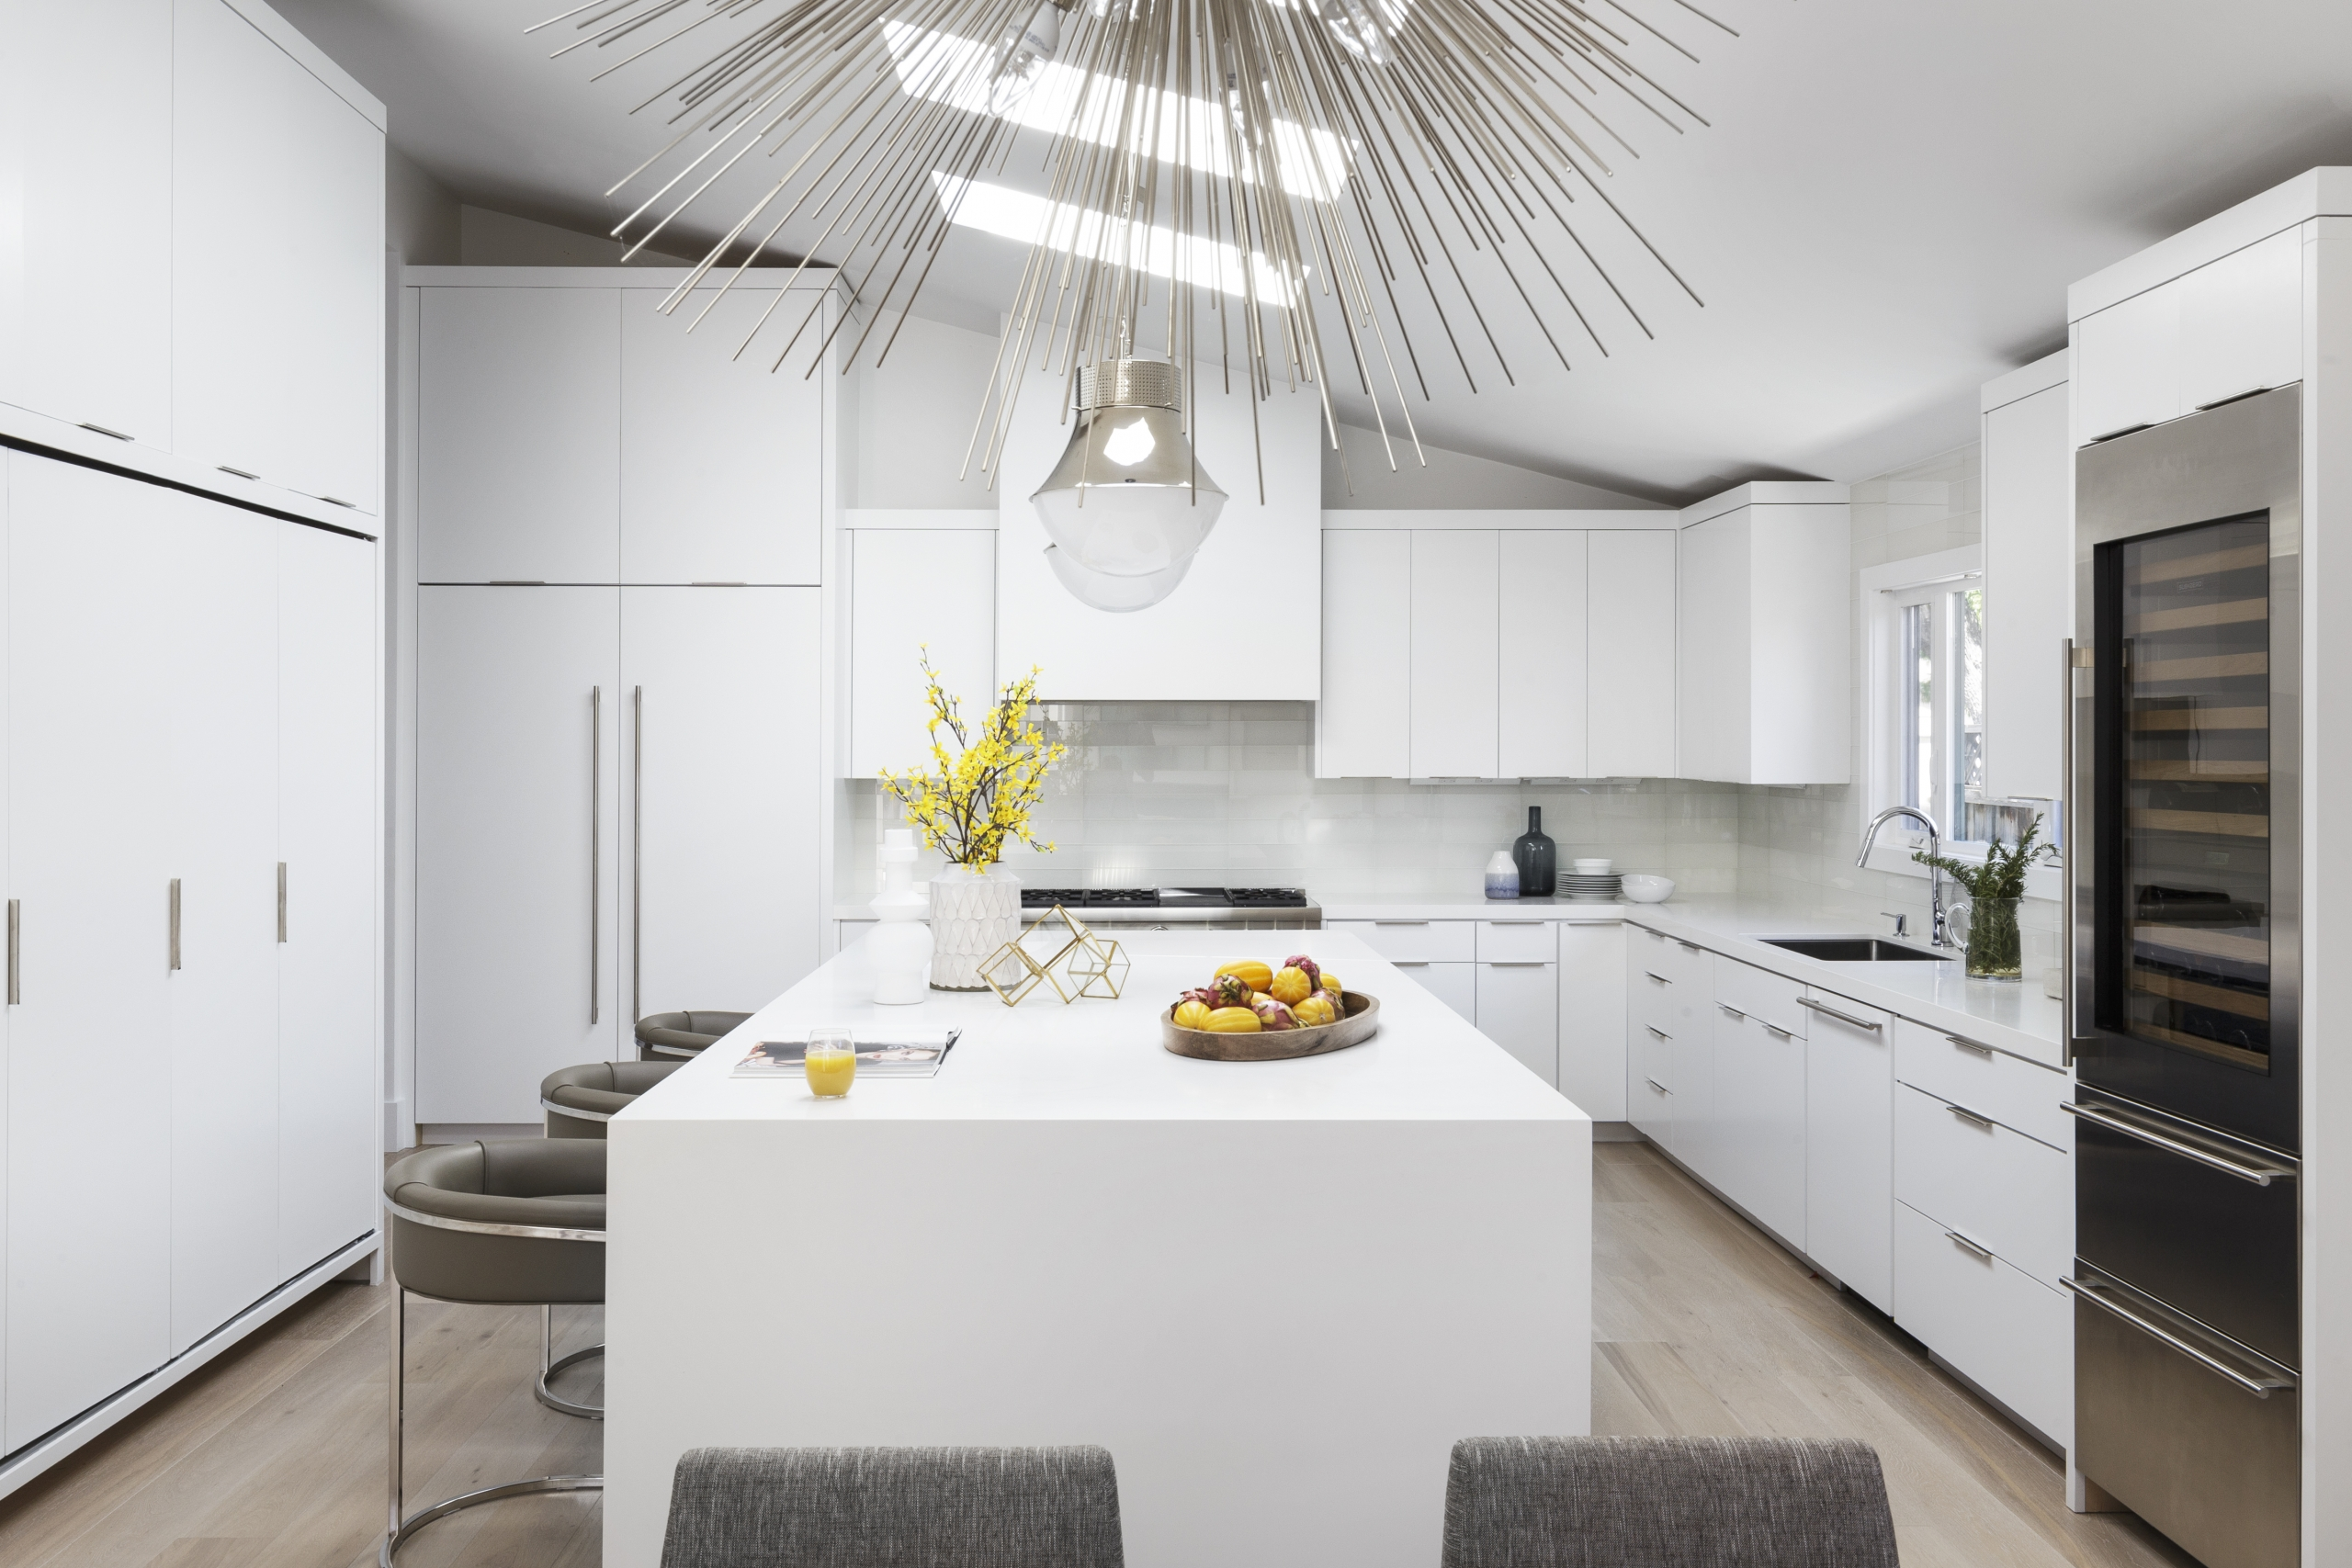 Kitchen with modern pendant, scaled lighting, and contemporary design